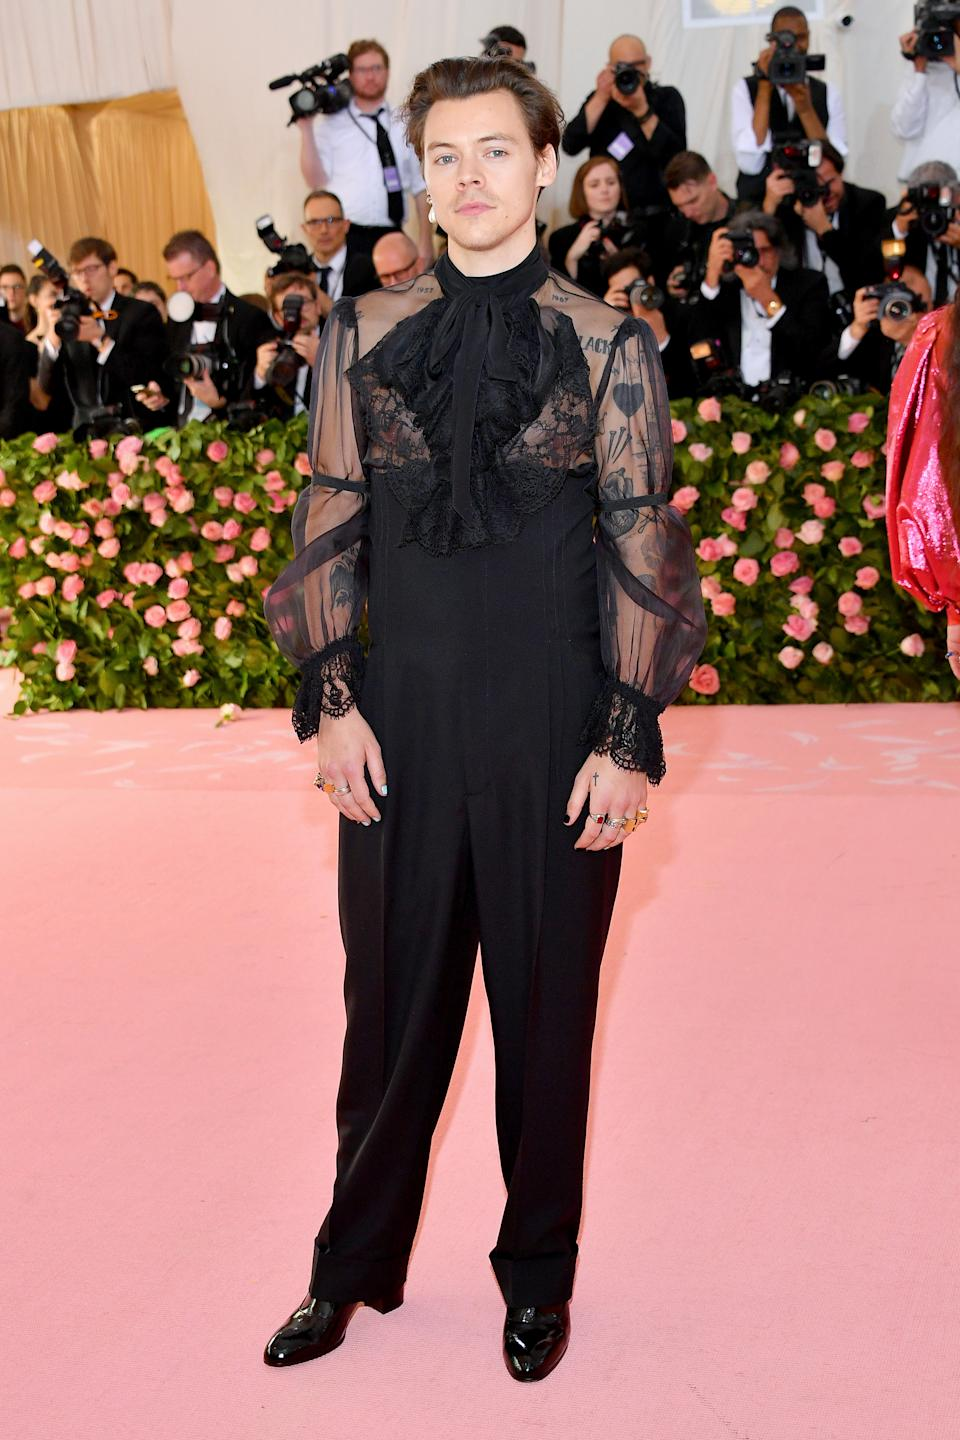 Harry Styles took the night's theme 'Camp: Notes on Fashion' very seriously for his first ever appearance at the event, and arrived in a sheer black top with lace detailing, which he matched with high-waisted black and heels. Photo: Getty Images